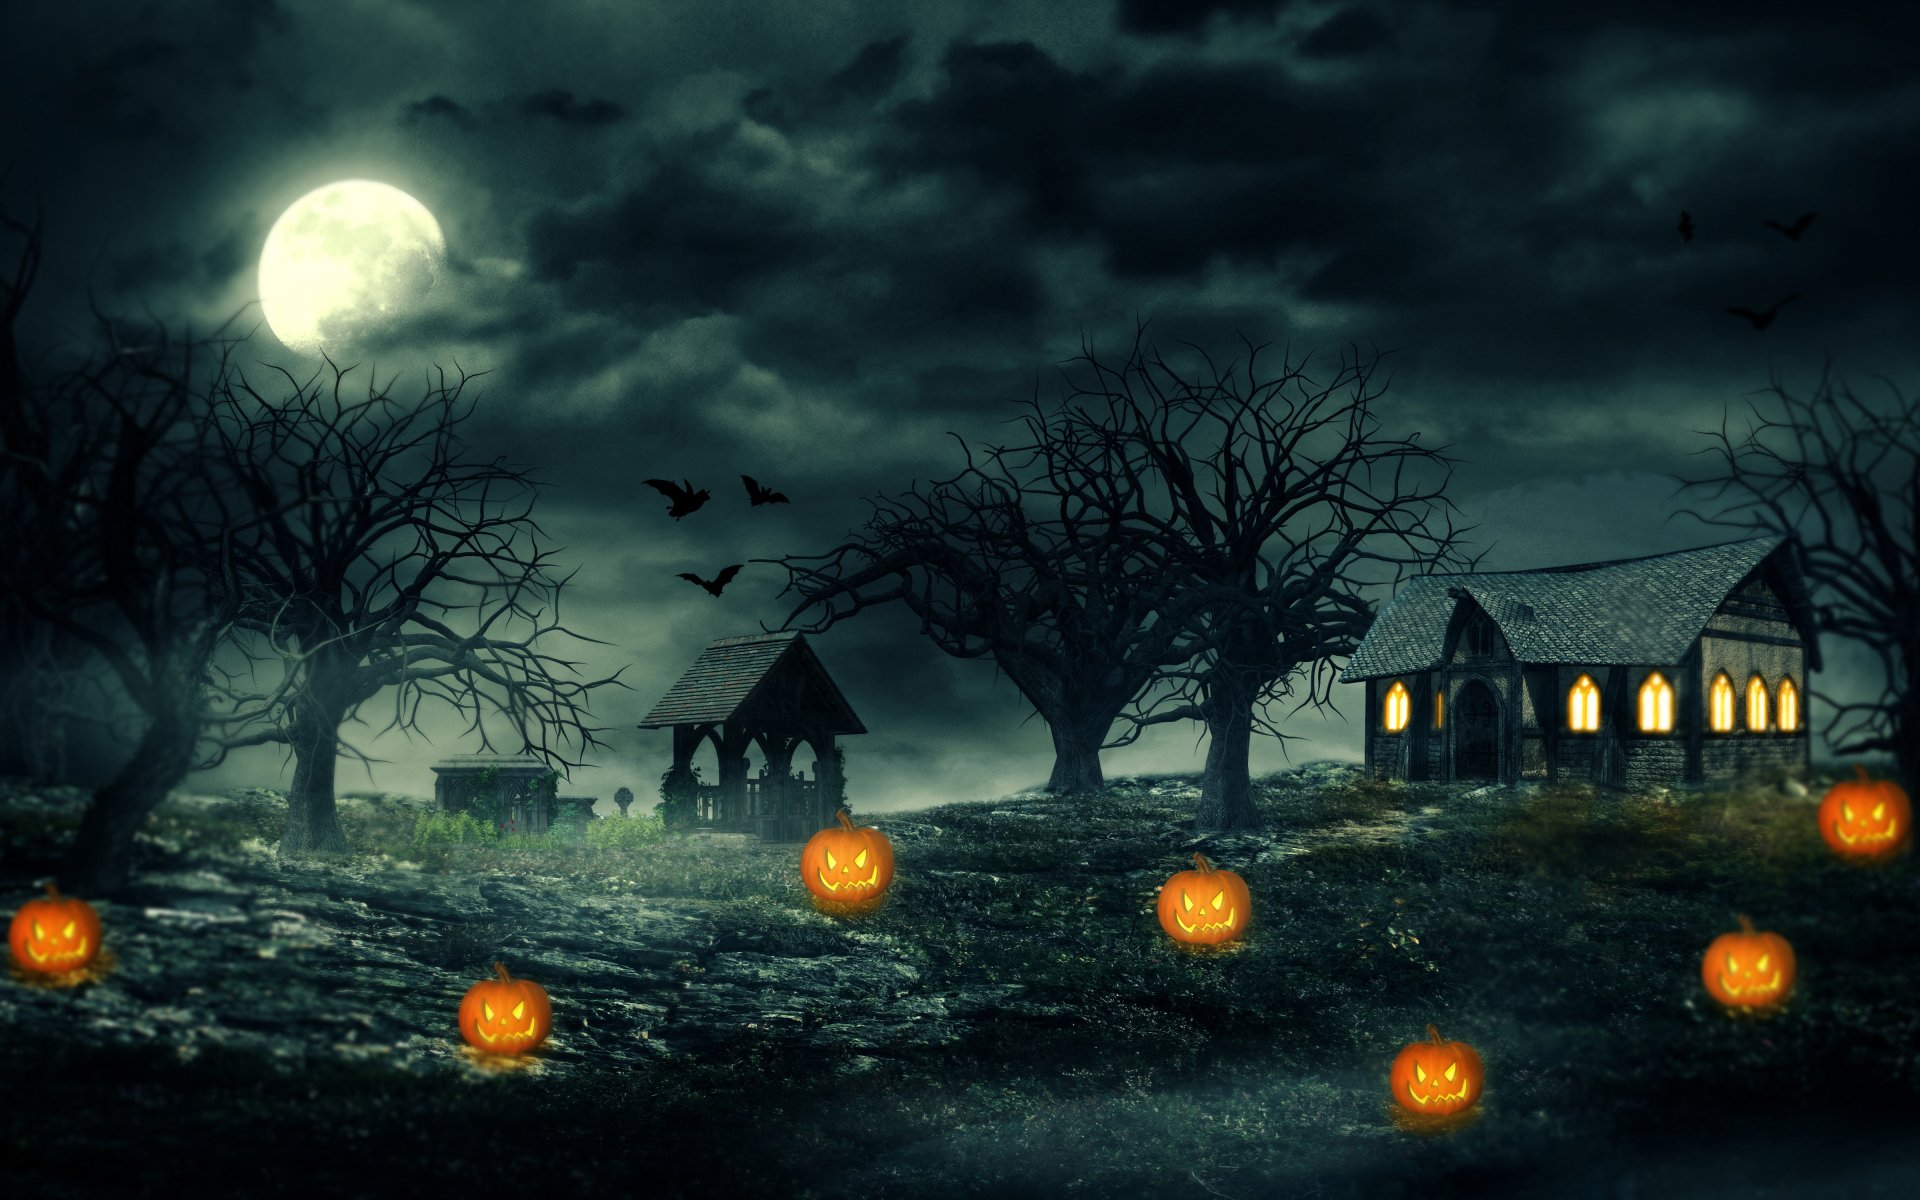 Holiday - Halloween  Holiday Pumpkin Jack-o'-lantern Haunted House Night Tree Moon Wallpaper